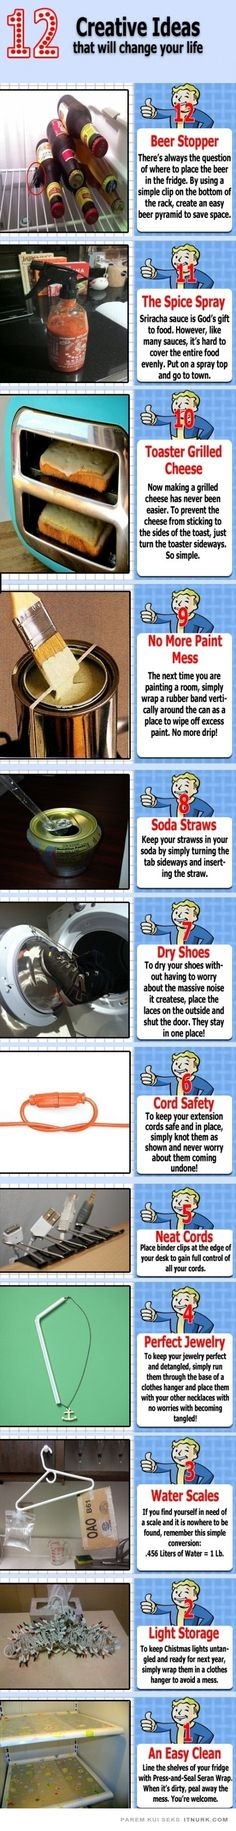 Cool Ideas to remember